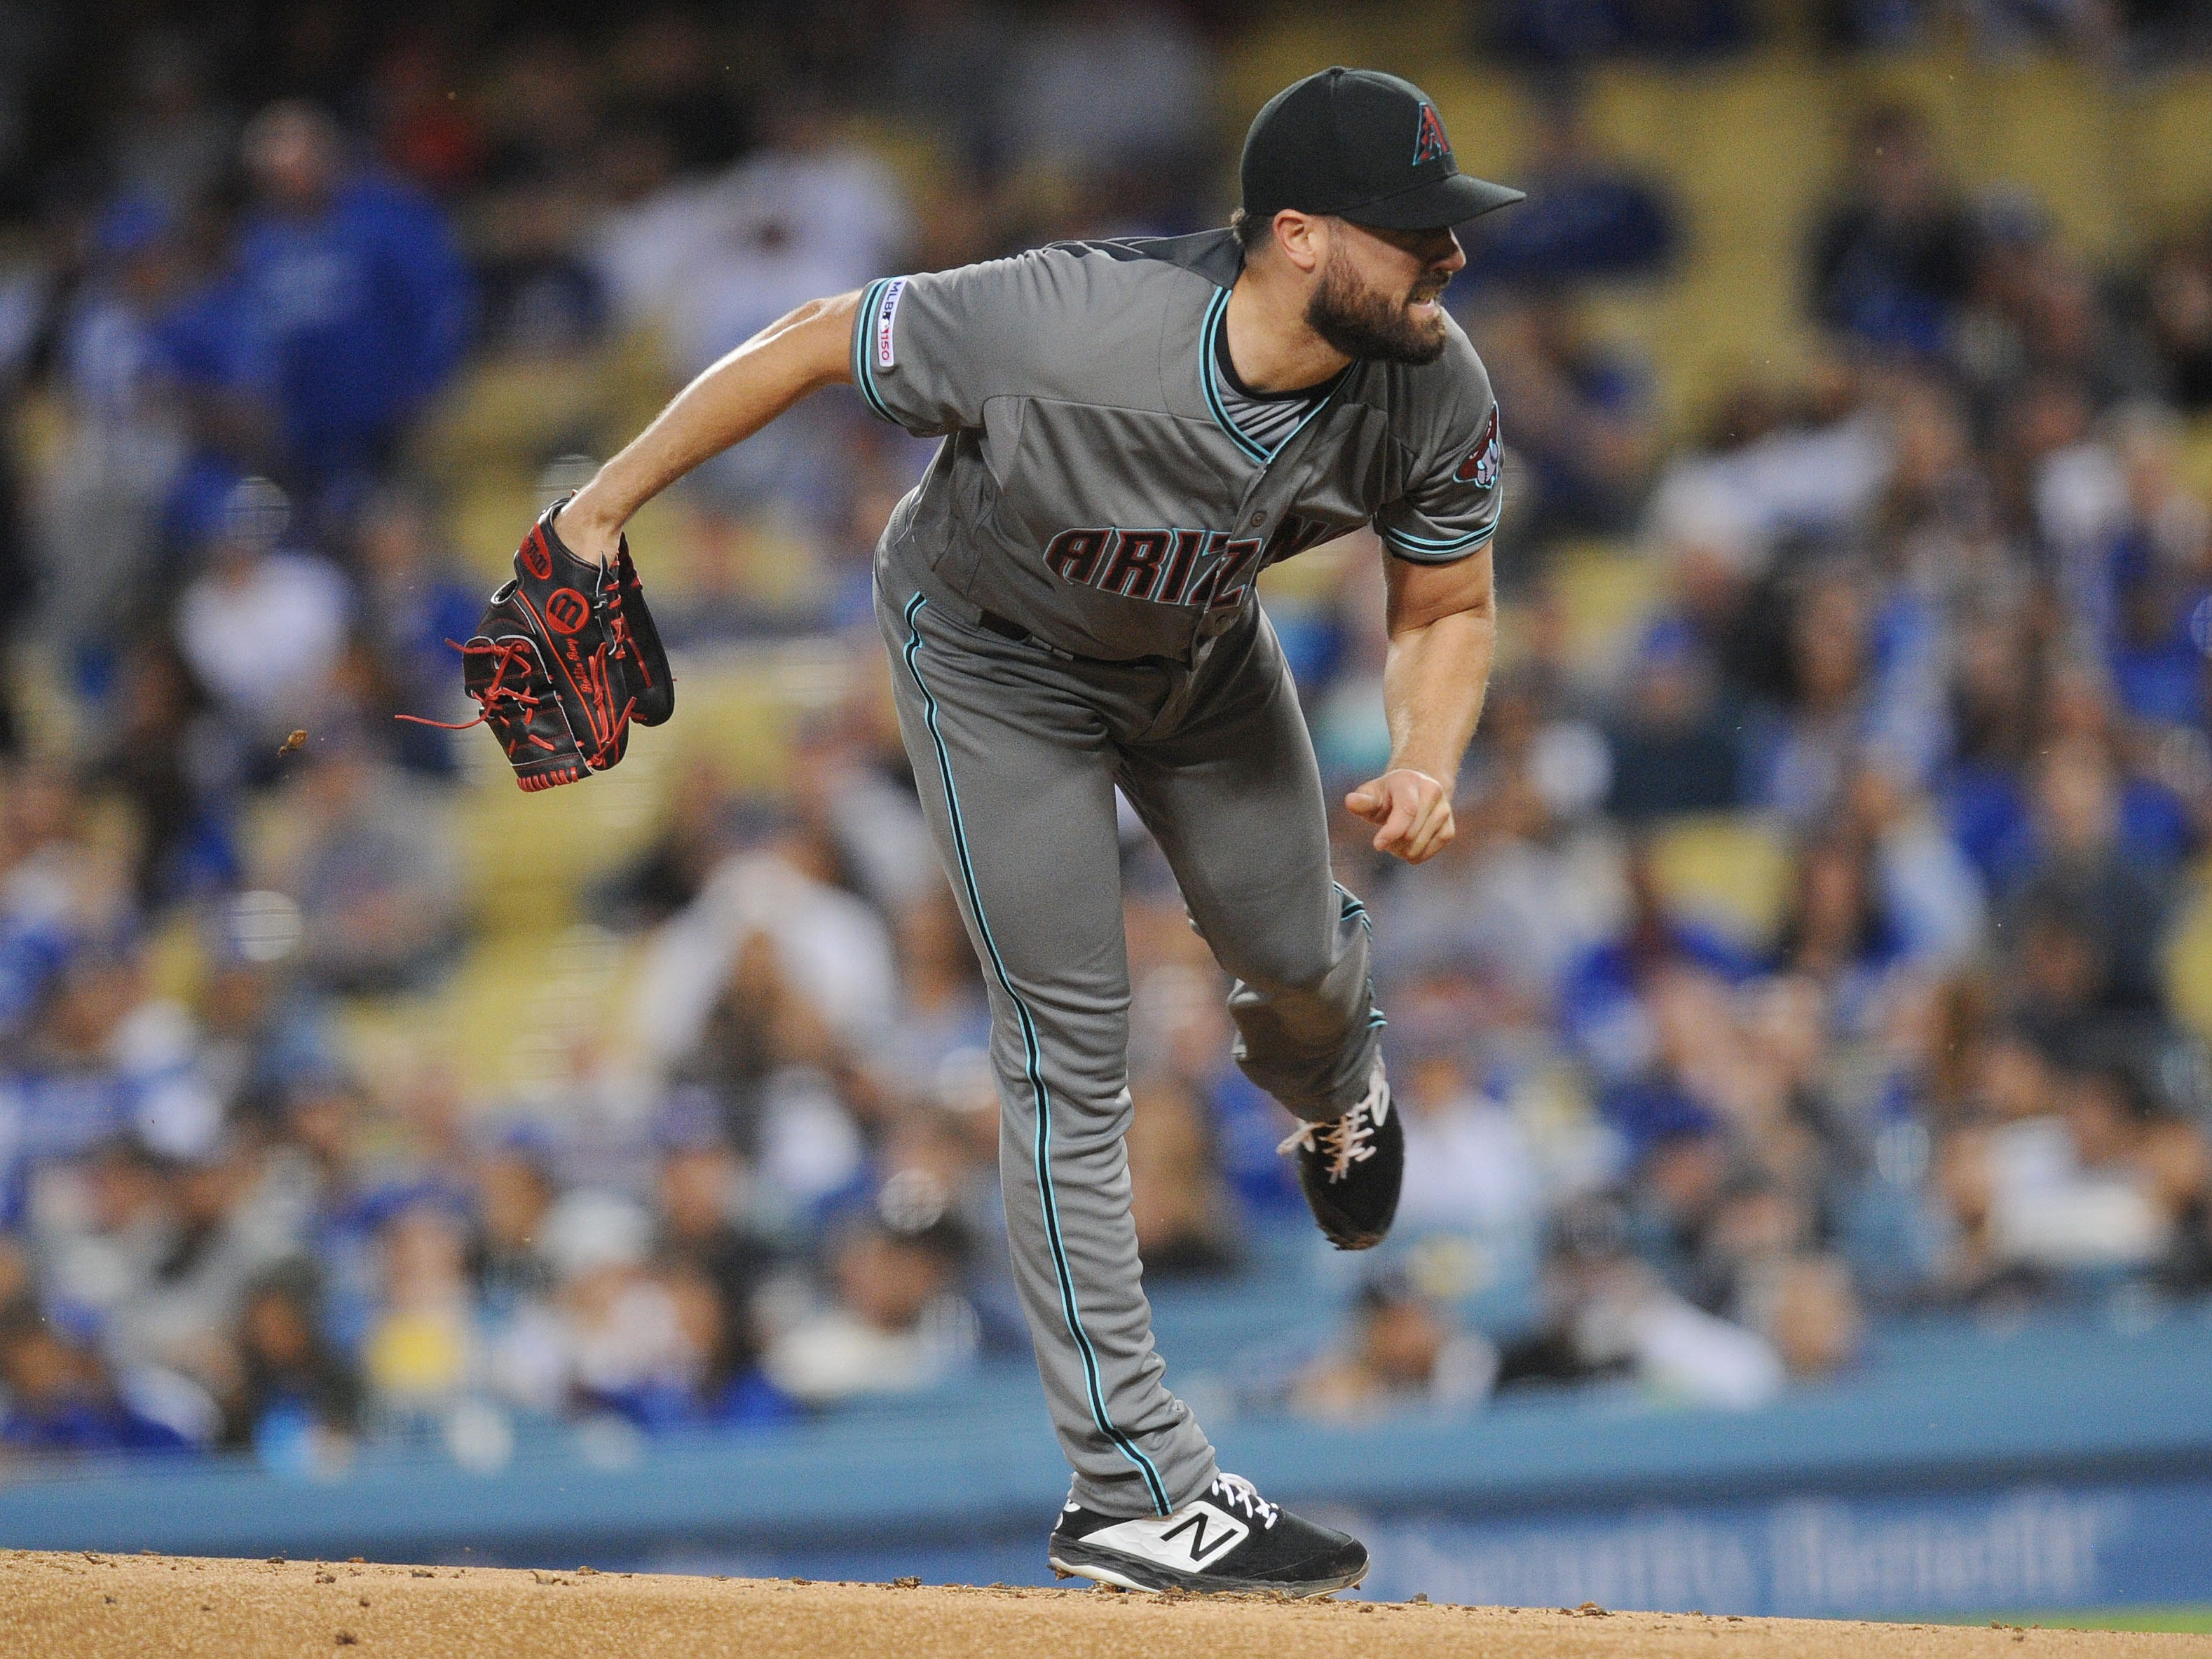 March 29, 2019; Los Angeles, CA, USA; Arizona Diamondbacks starting pitcher Robbie Ray (38) throws during the first inning against the Los Angeles Dodgers at Dodger Stadium.